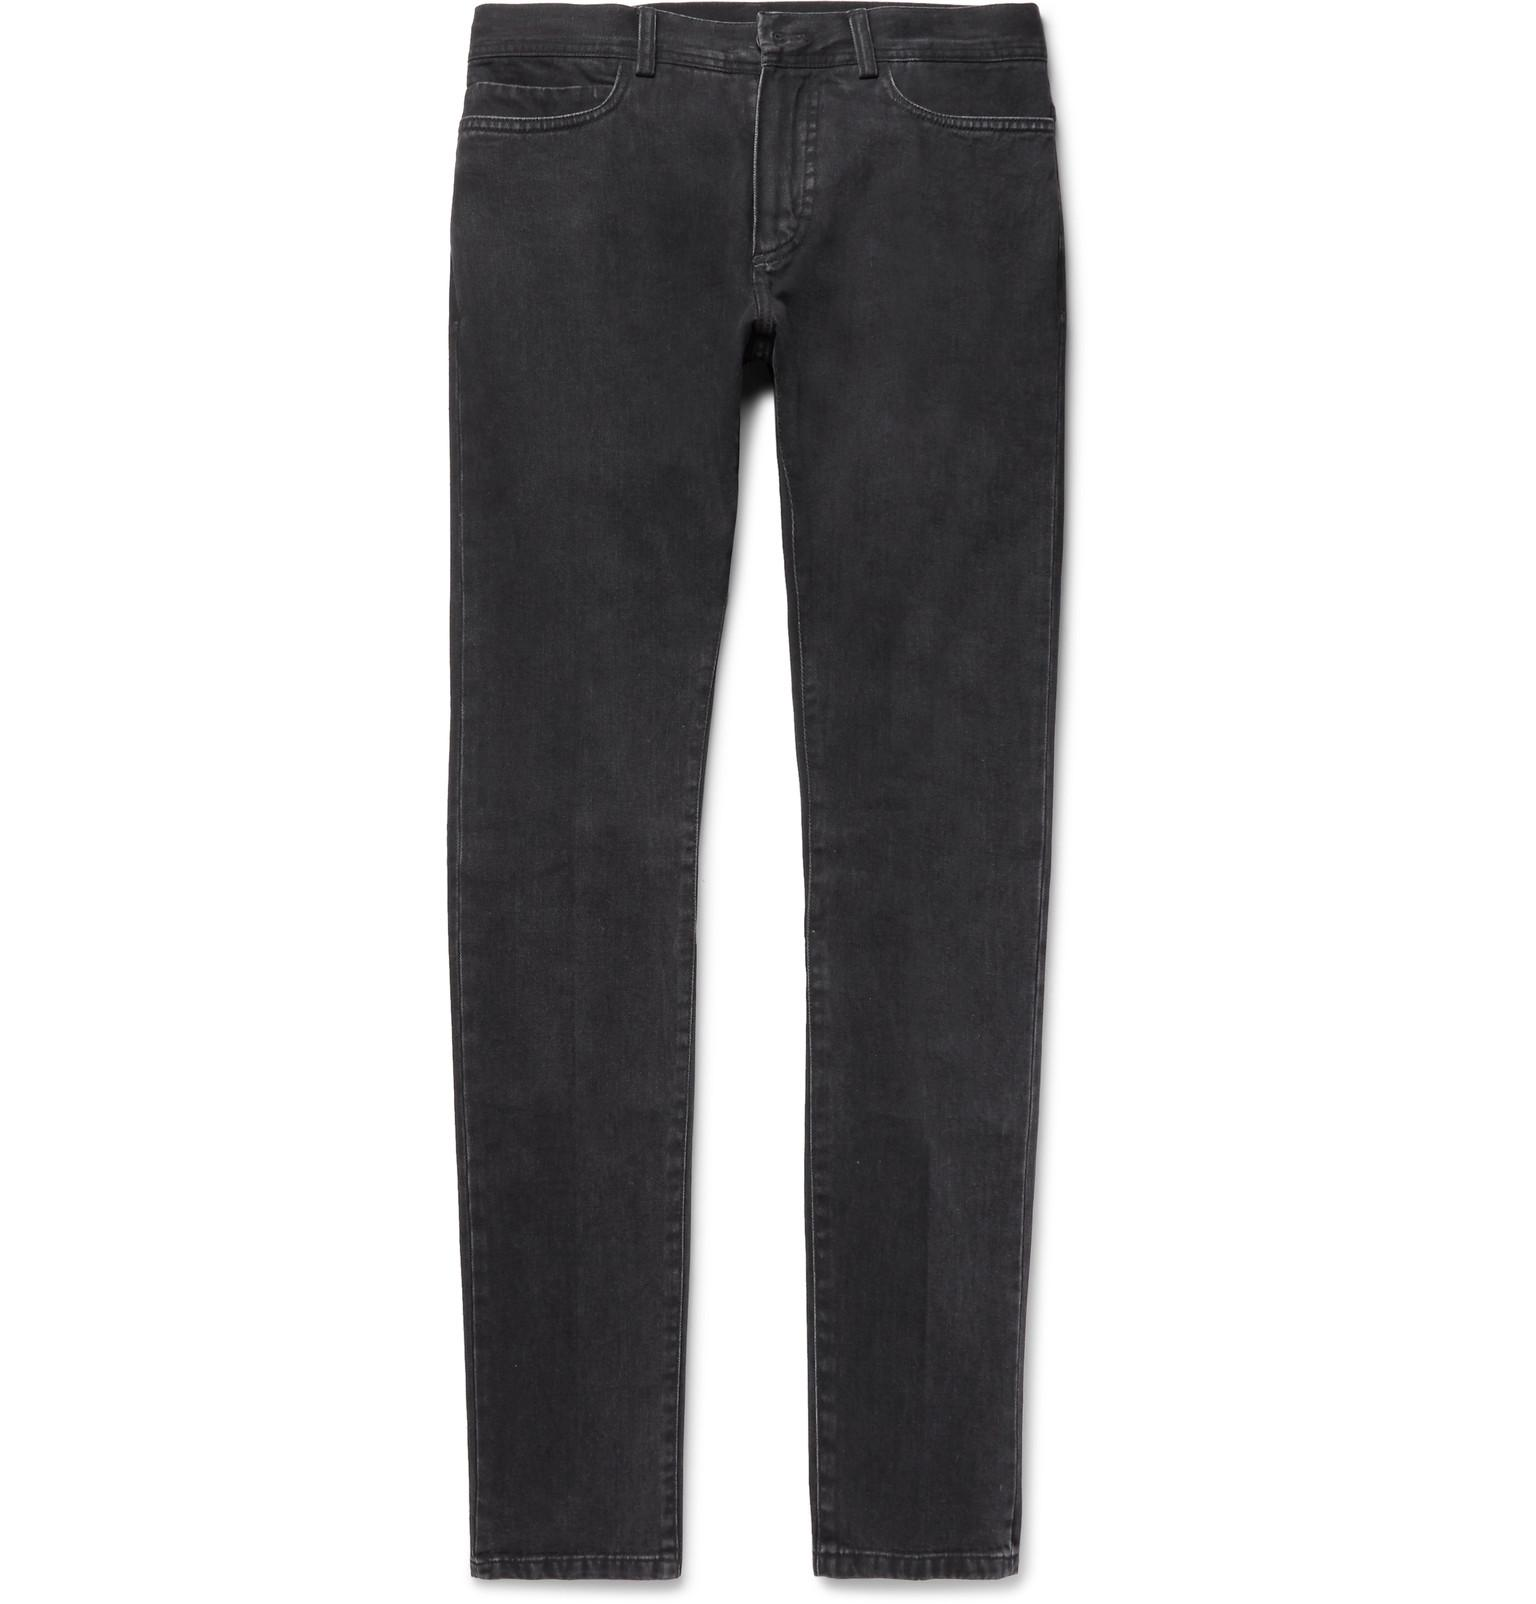 With Paypal Cheap Price Slim-fit Washed-denim Jeans Berluti Shopping Online Original Buy Cheap Find Great 9ZZx1FKhR